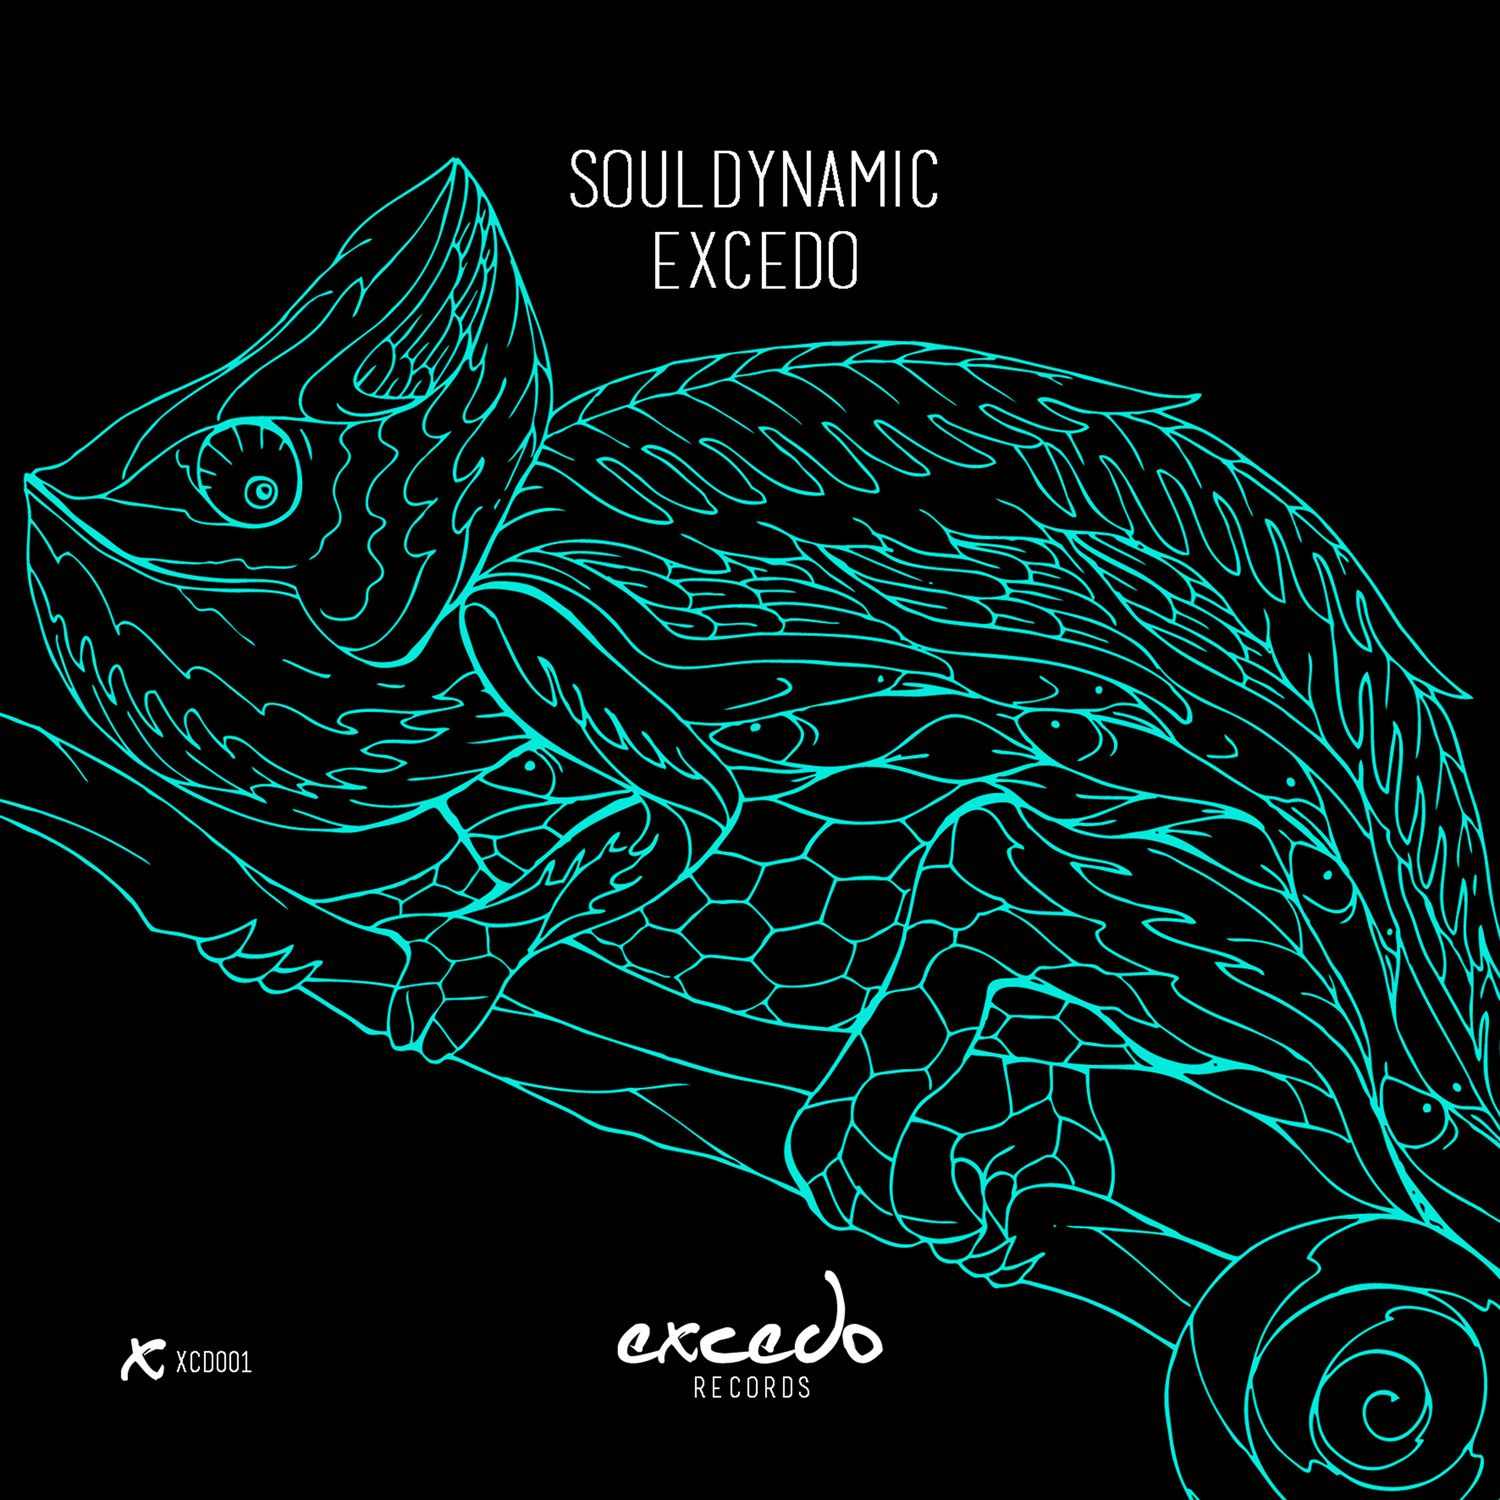 souldynamic_-_excedo_excedo_records_xcd001_cover.jpg